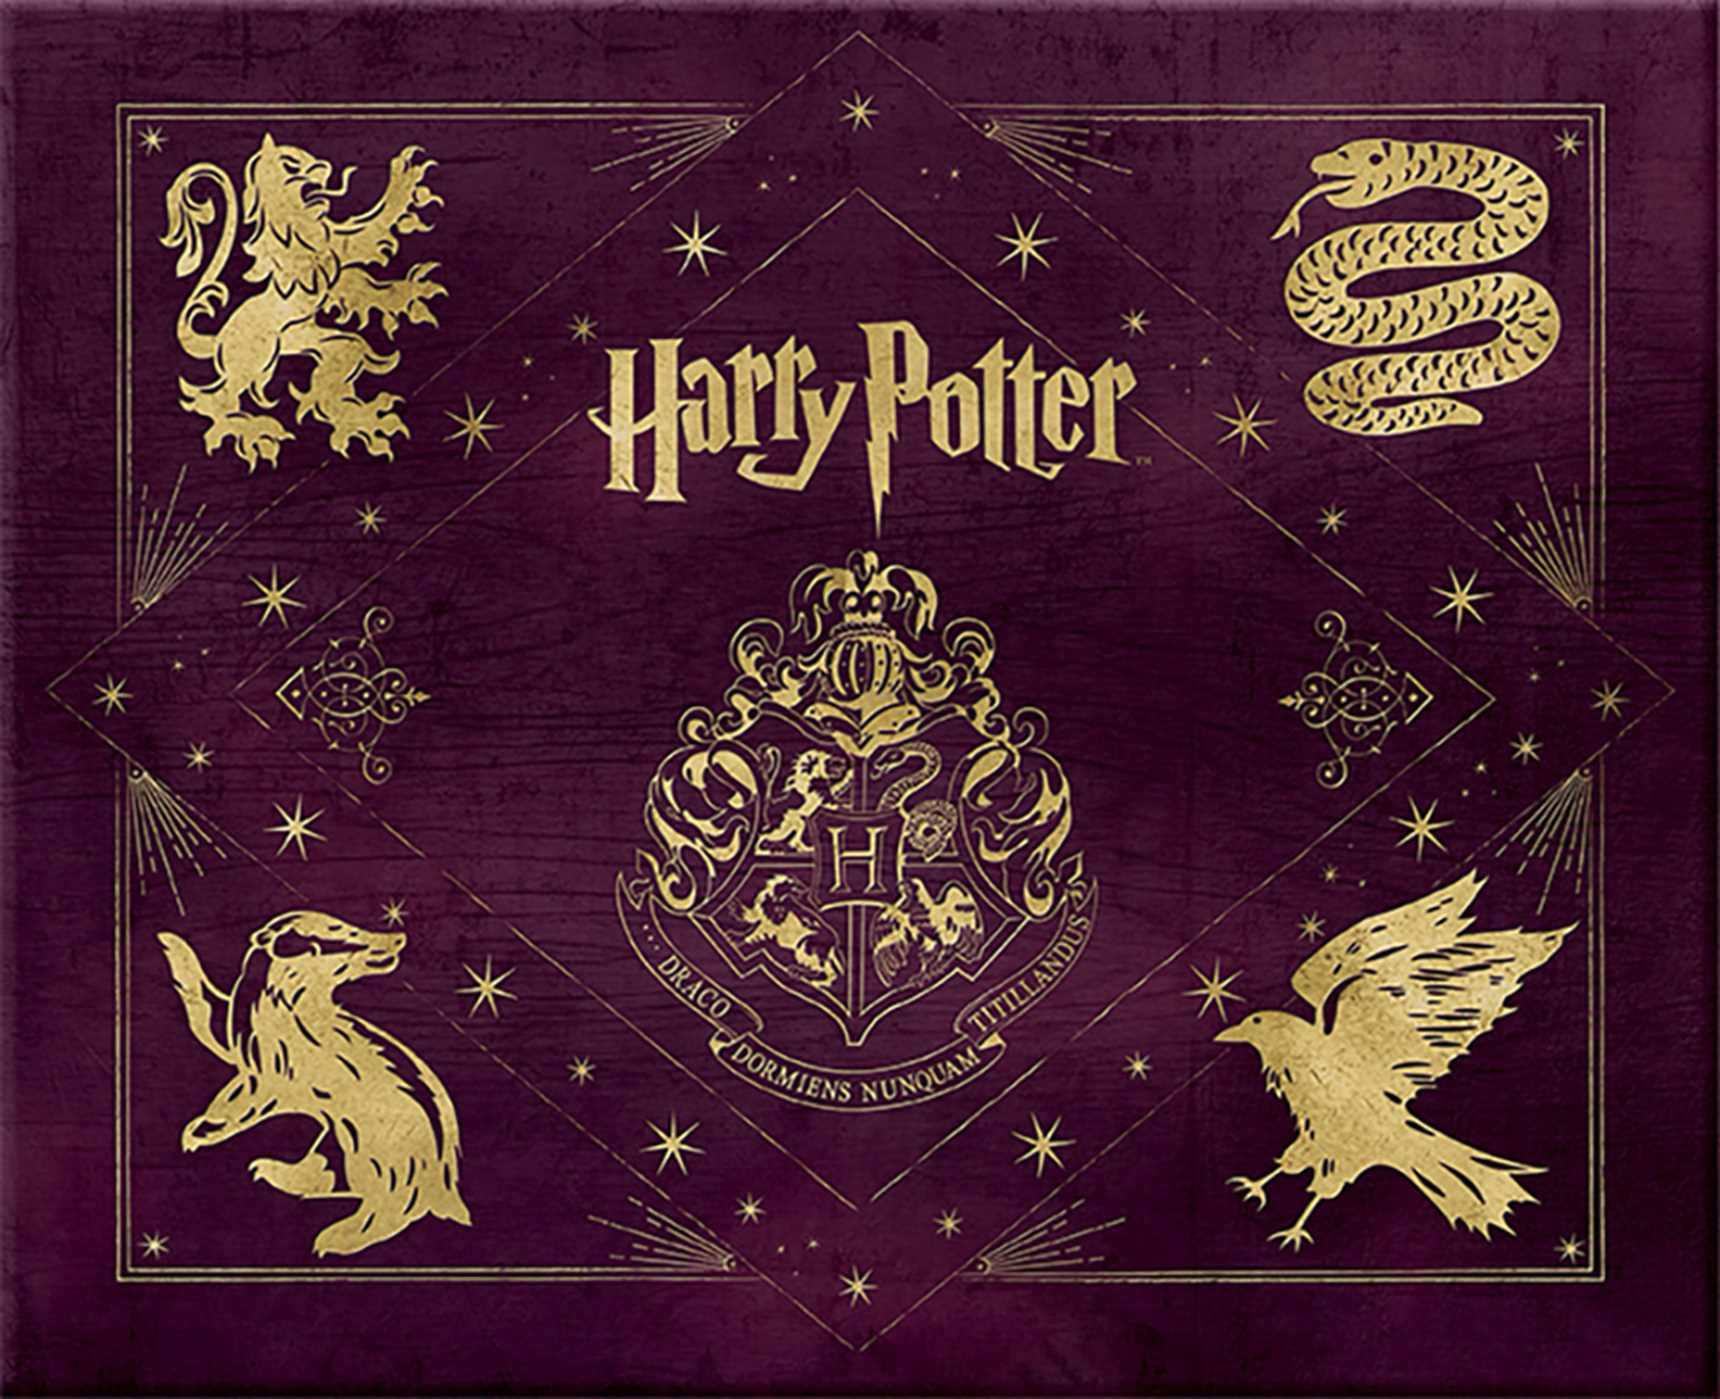 Harry Potter Hogwarts Deluxe Stationery Set  Book by